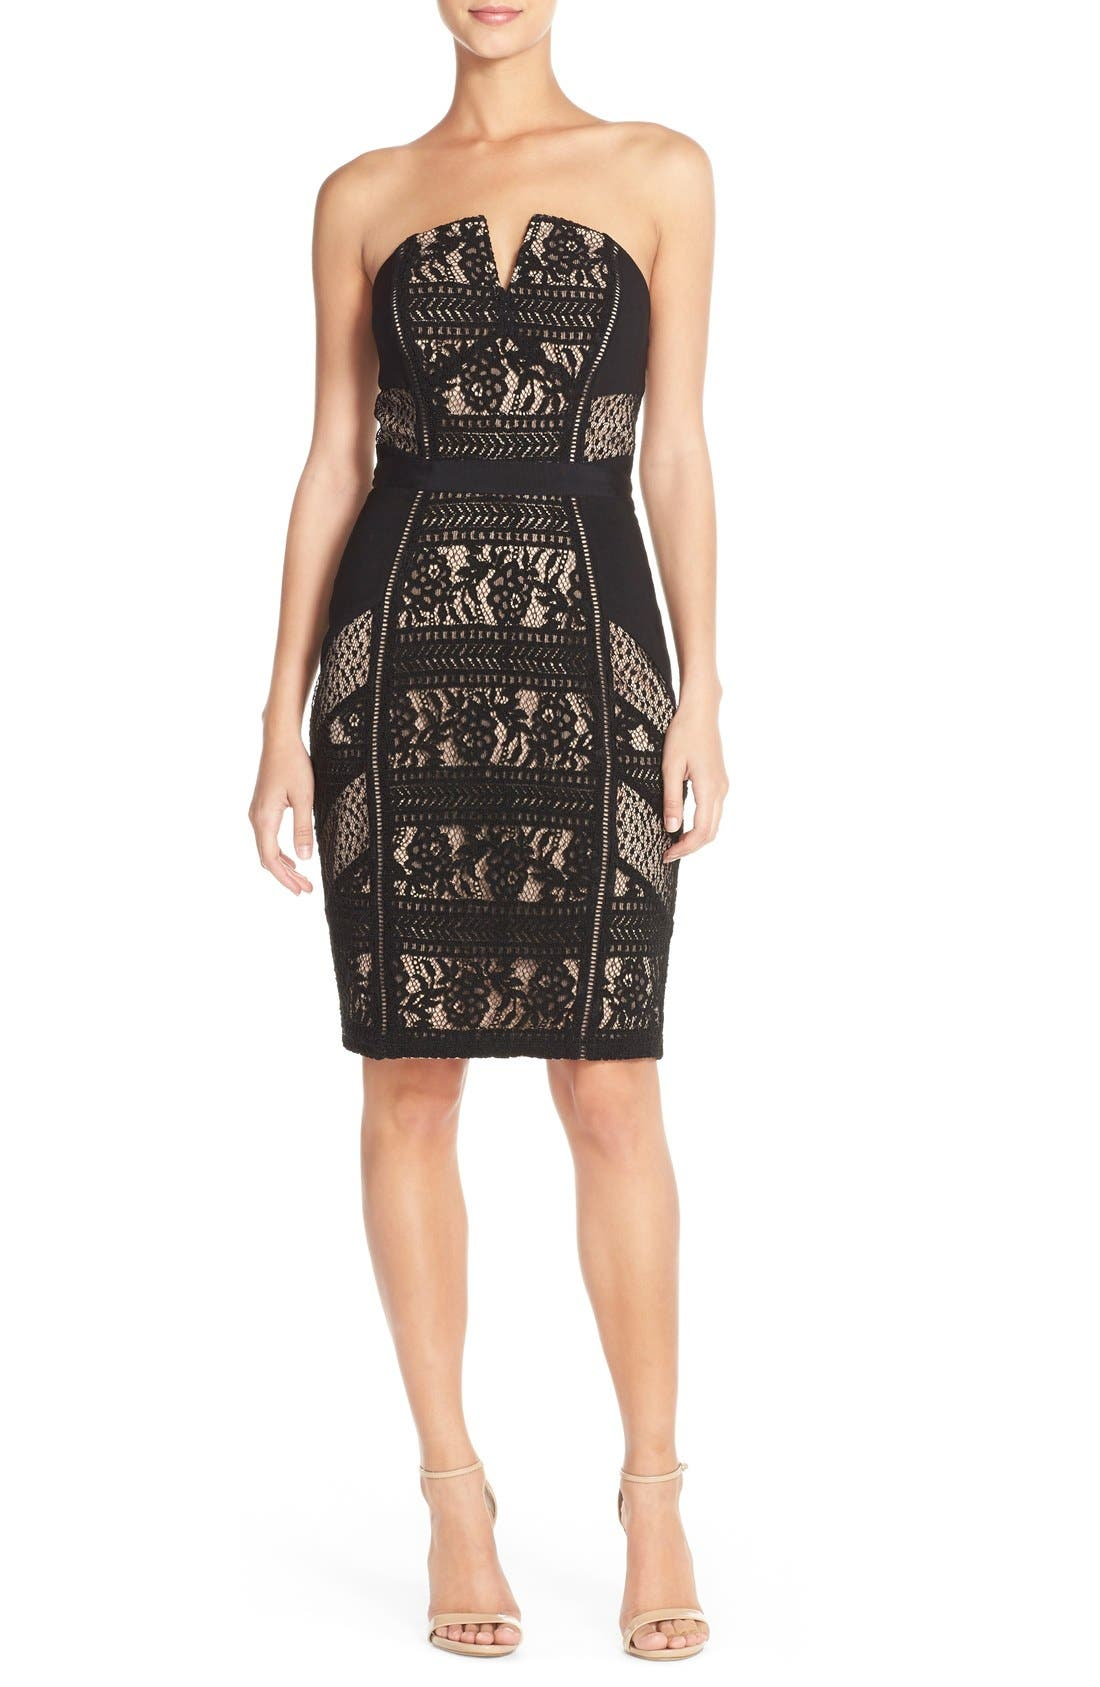 Alternate Image 1 Selected - Adelyn Rae Lace Strapless Dress